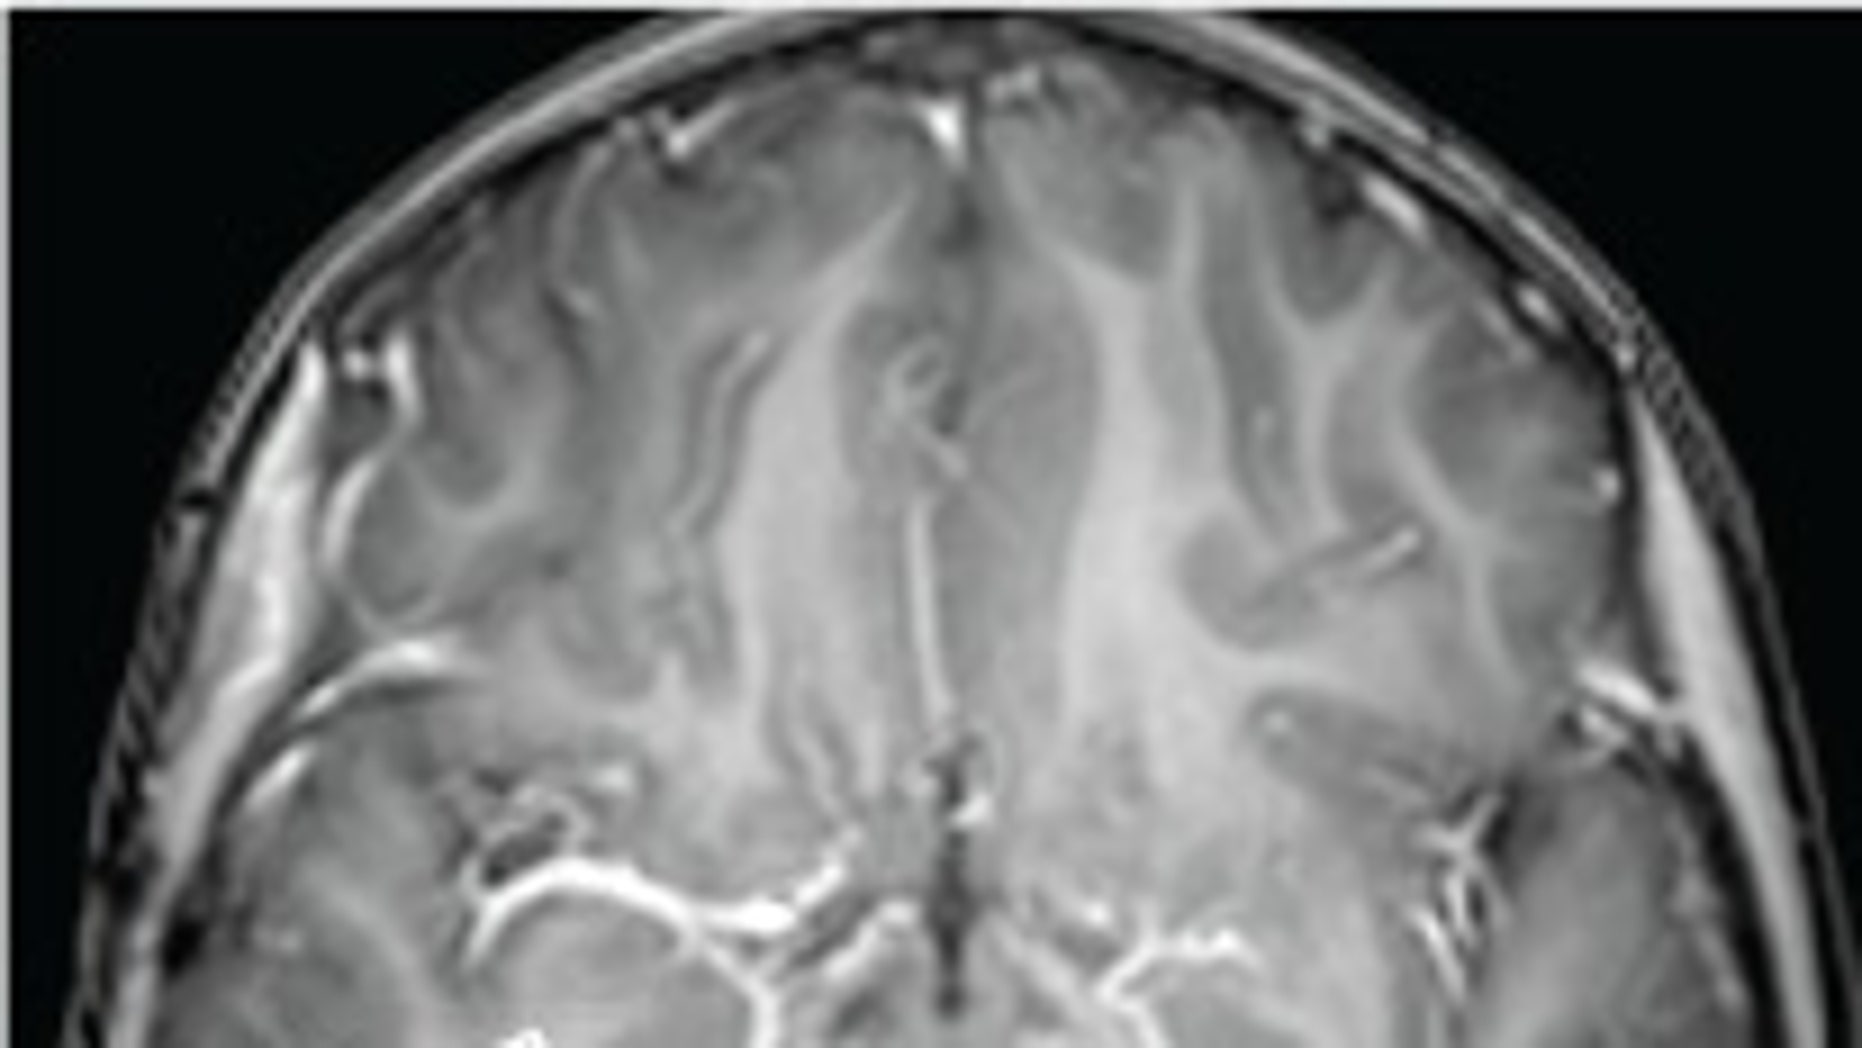 A brain tumor from a young girl with uncontrollable laughter is shown in this MRI scan.